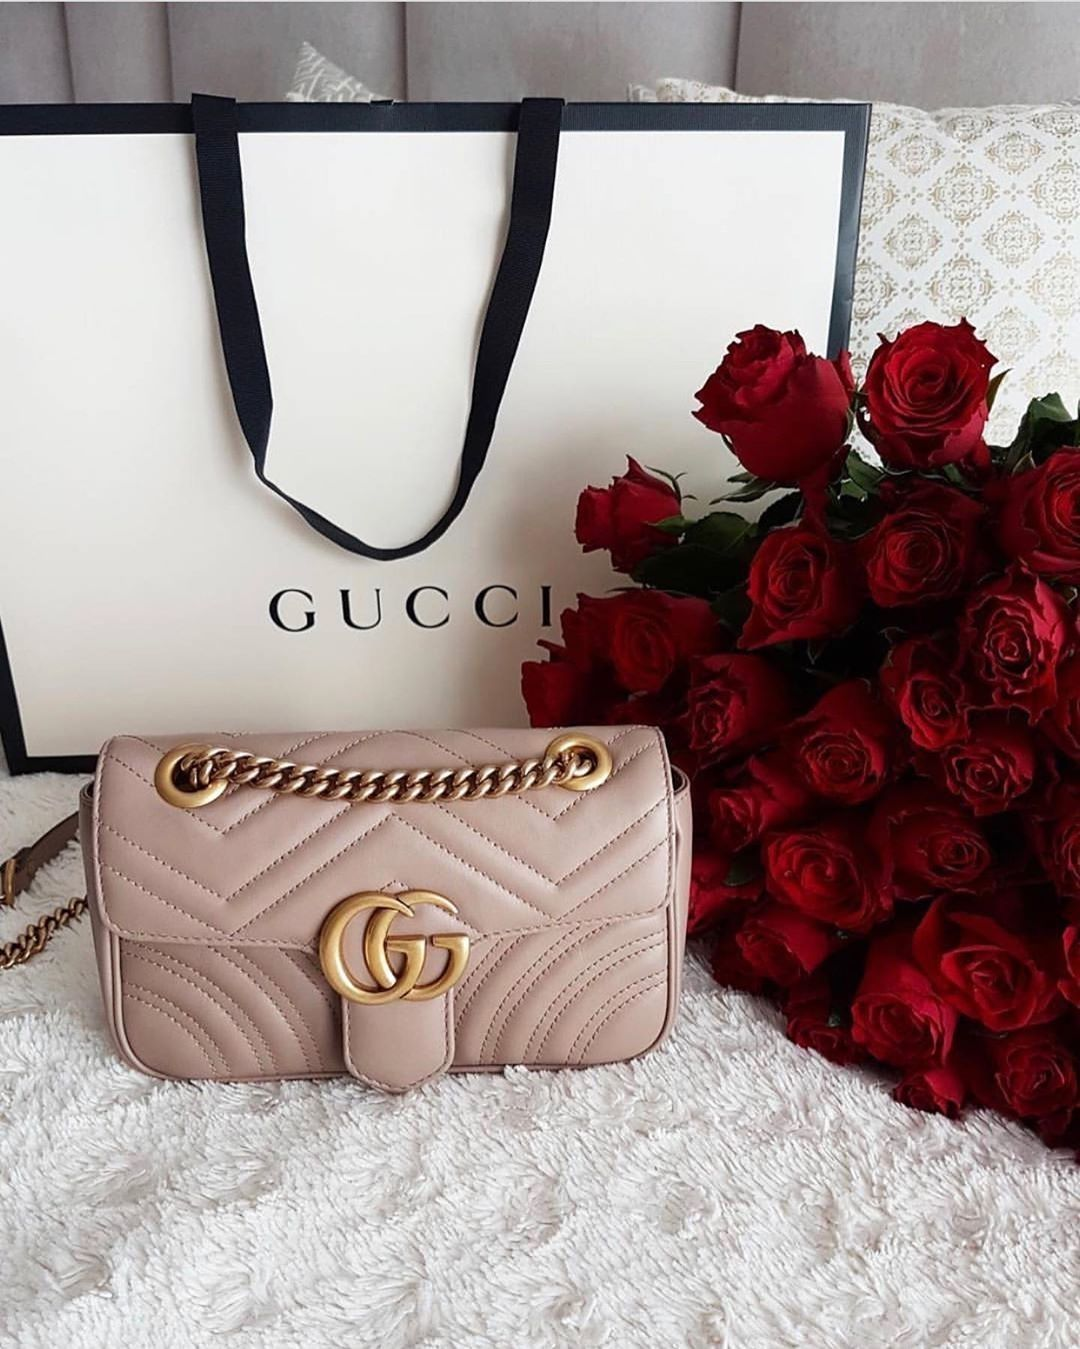 top quality replica handbags, louis vuitton replica, chanel bag replica, dior bag replica, hermes replica, belts replica Where you can have this collection😋👉🏻👉🏻☎️WhatsApp: +8618666021721 👈🏻👈🏻👈🏻 ▪️ ✈️Worldwide Express Shipping🌍 ▪️▪️▪️ #GUCCIFashion #GUCCILove #ClassicGUCCI #GUCCIFan #ChiqueGUCCI #GUCCILover #GUCCIGang #GUCCIAddict #ChiqueGUCCI #GUCCIBags #GUCCIDionysus #GUCCIMarmont #Marmont #GUCCI #GUCCIBag #GUCCISylvie #GUCCIShoes #GUCCIBelt #GUCCIWallet